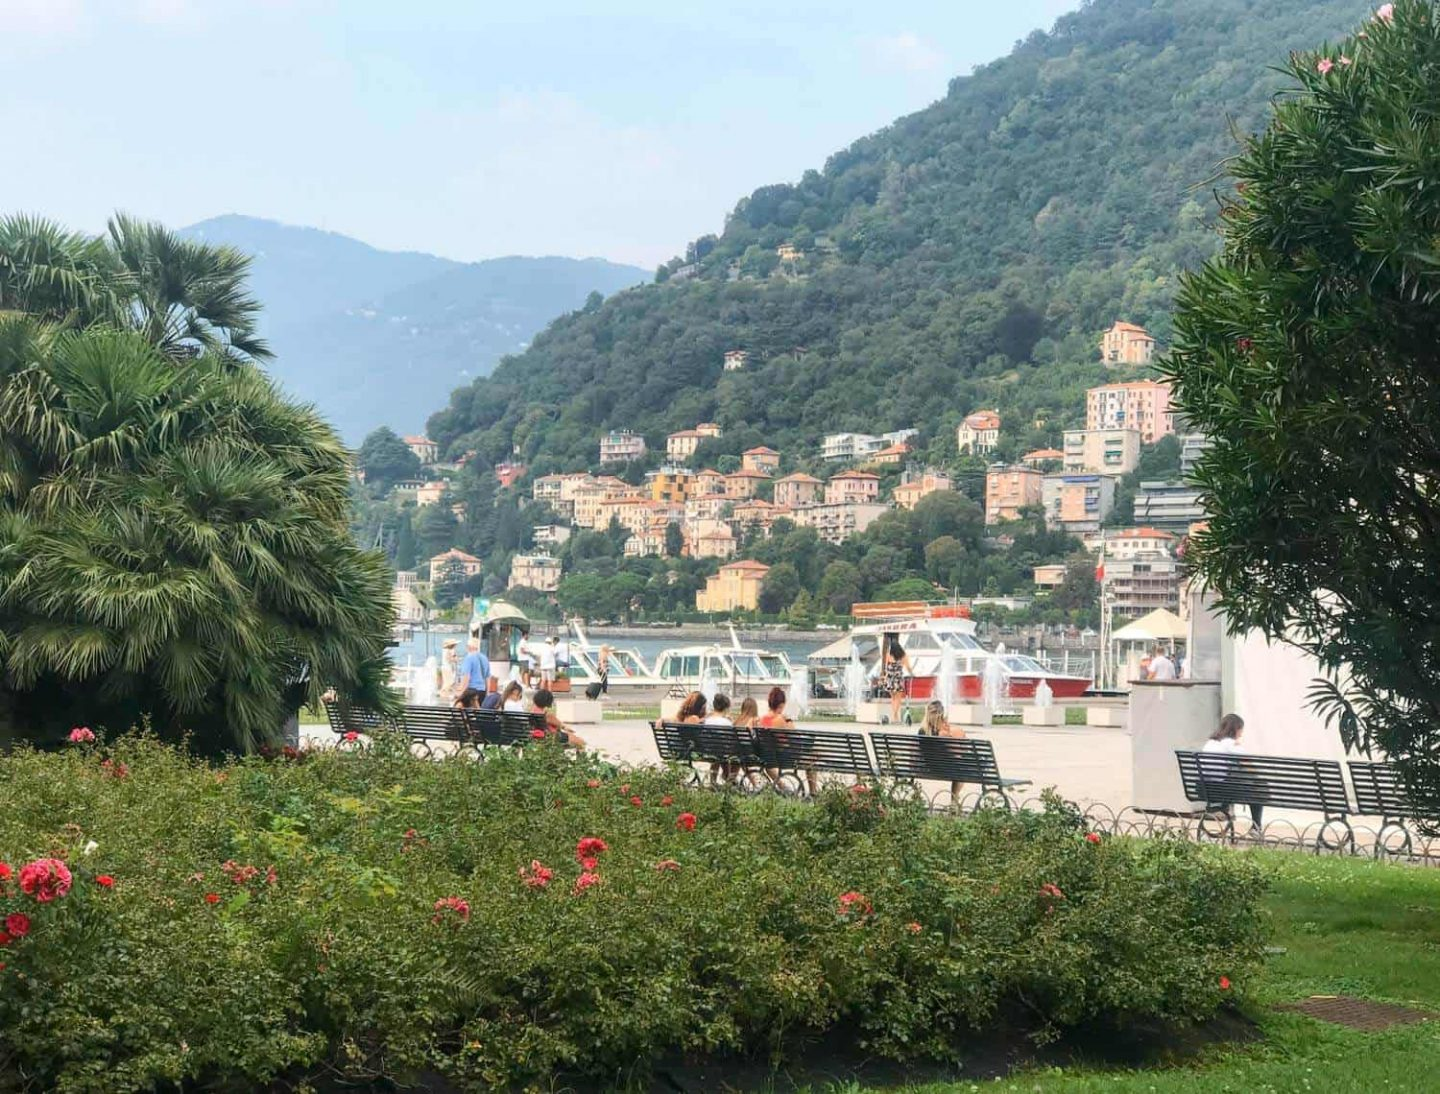 Looking out over Lake Como from Piazza Cavour